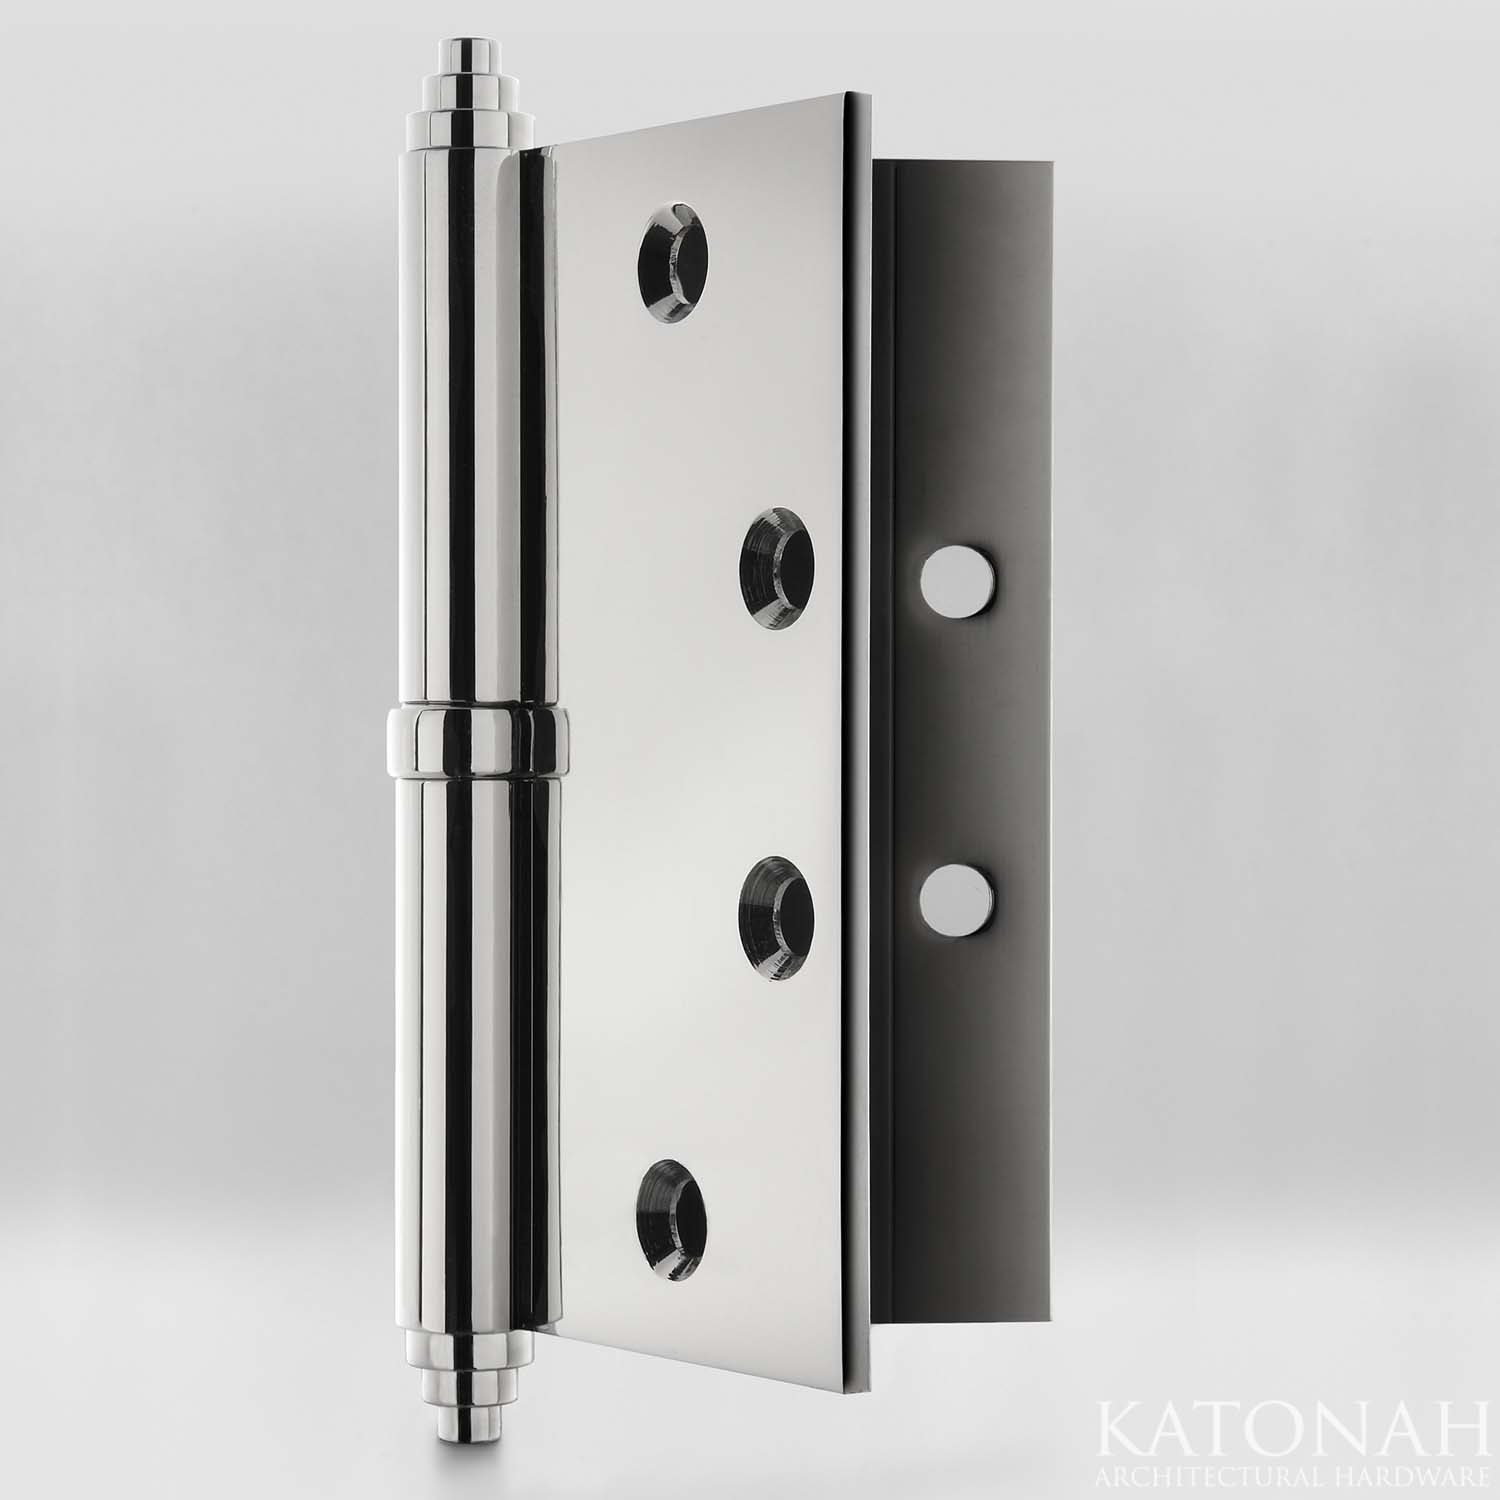 Lift Off Hinge With Exposed Bearing And Stepped Finial